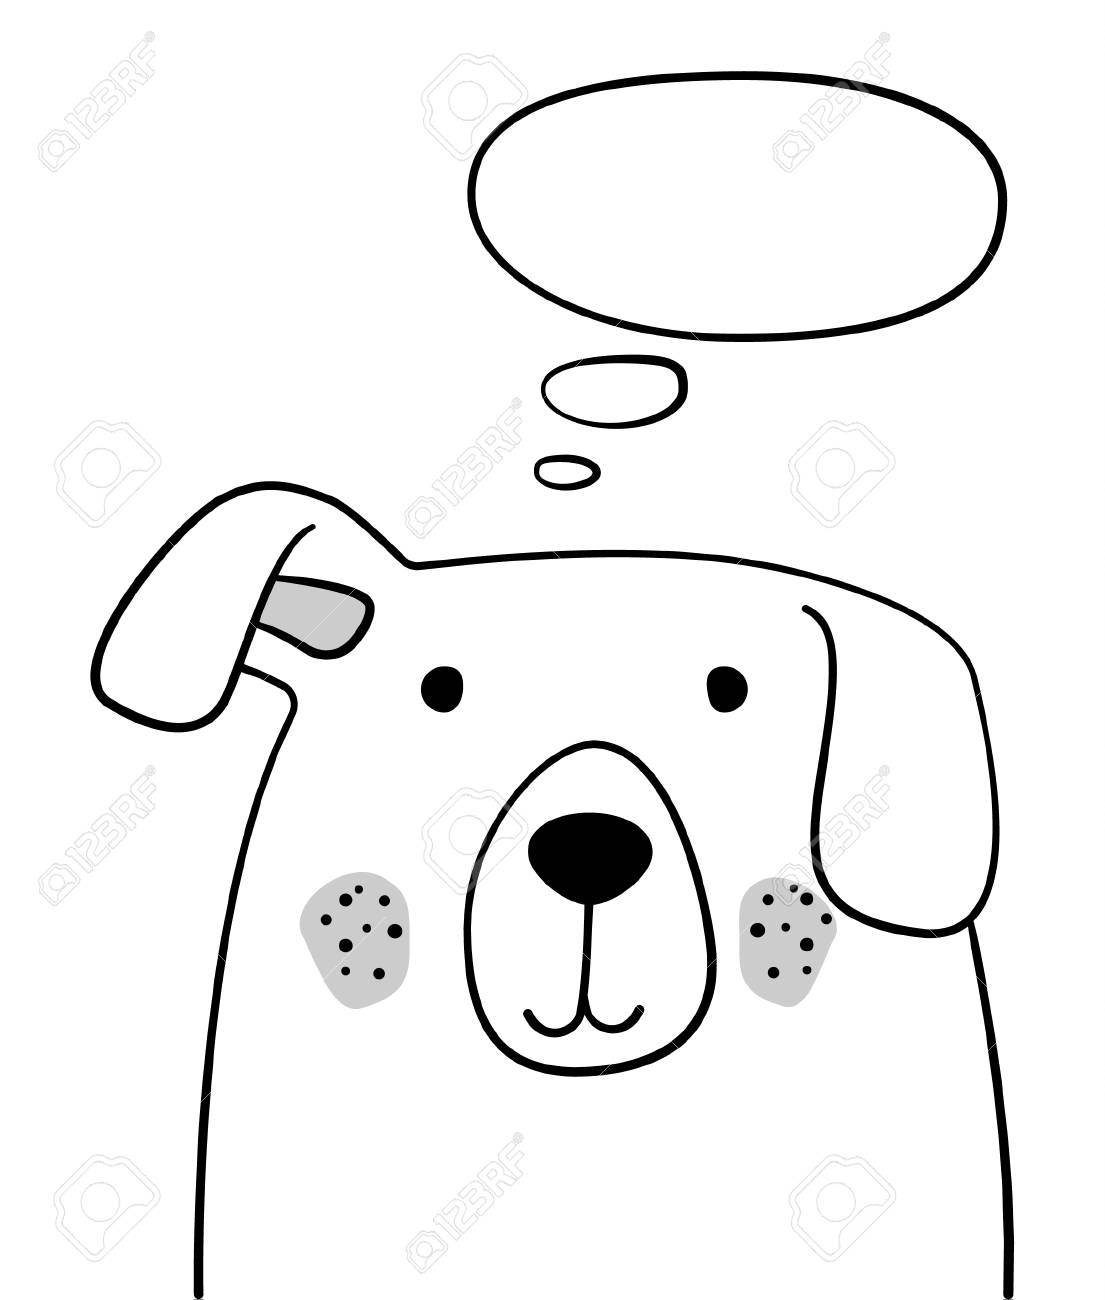 Doodle Sketch Dog With Thought Cloud Illustration Cartoon Dog